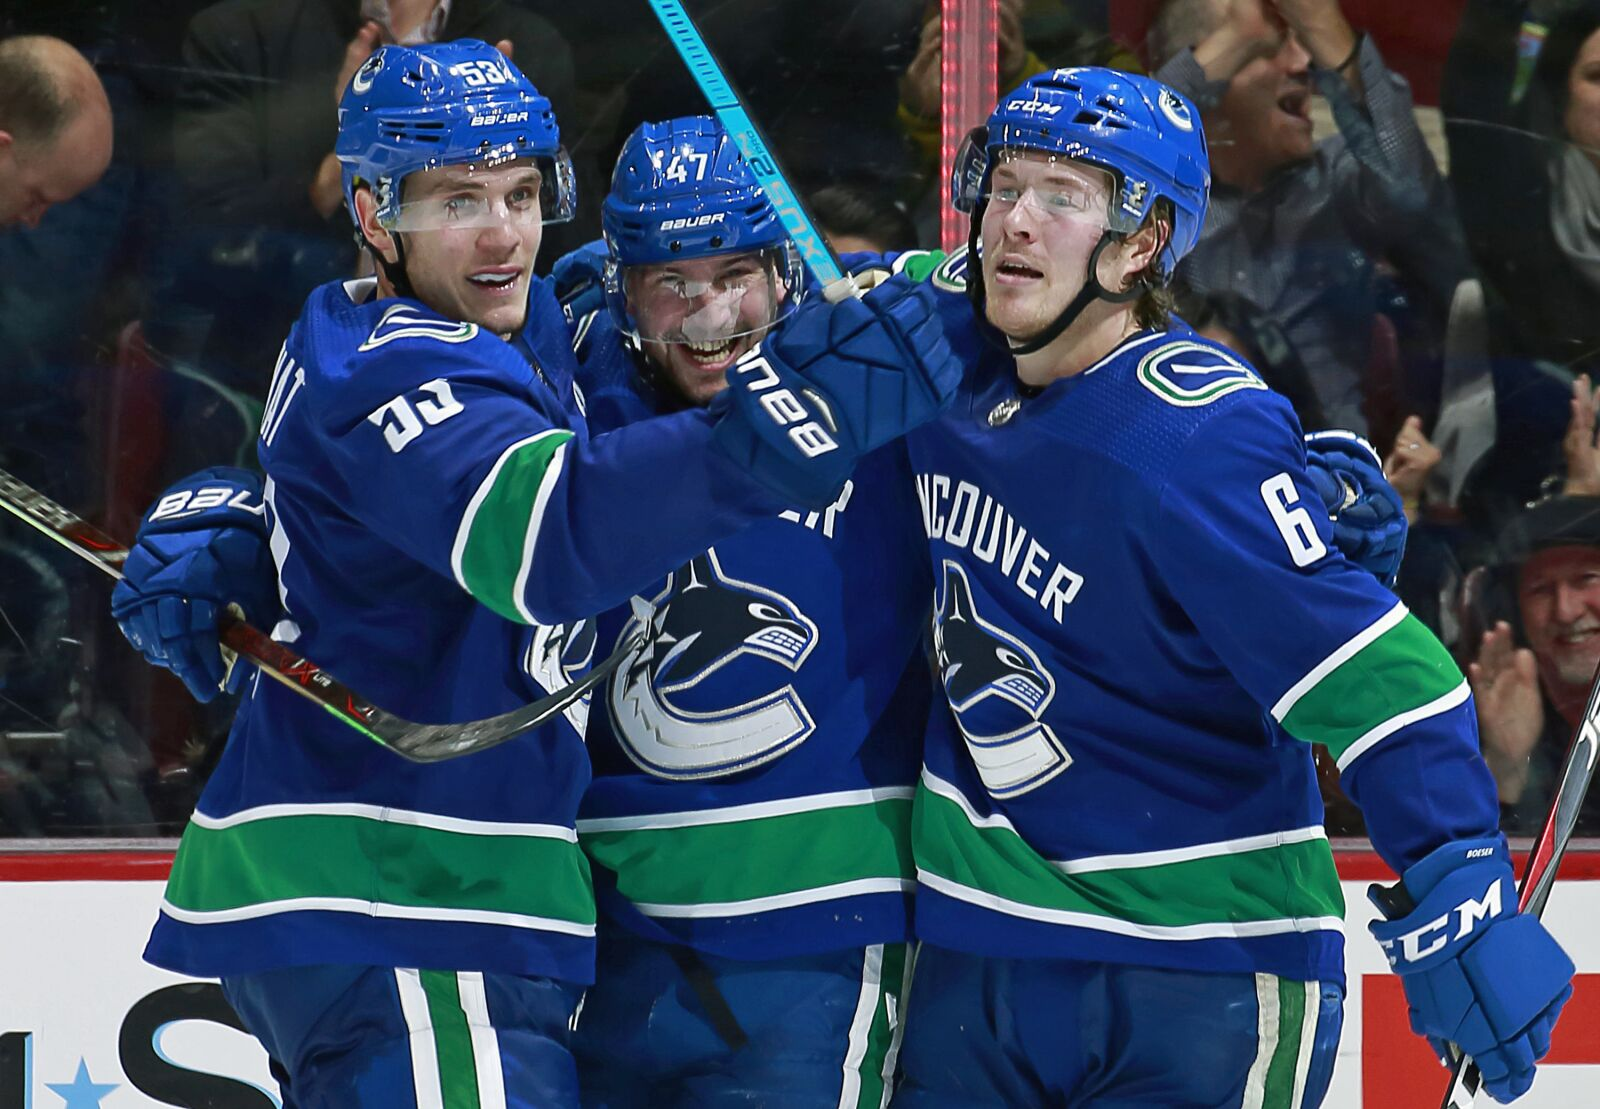 Vancouver Canucks  Projecting who will finish with 20-plus goals d6eadfc22